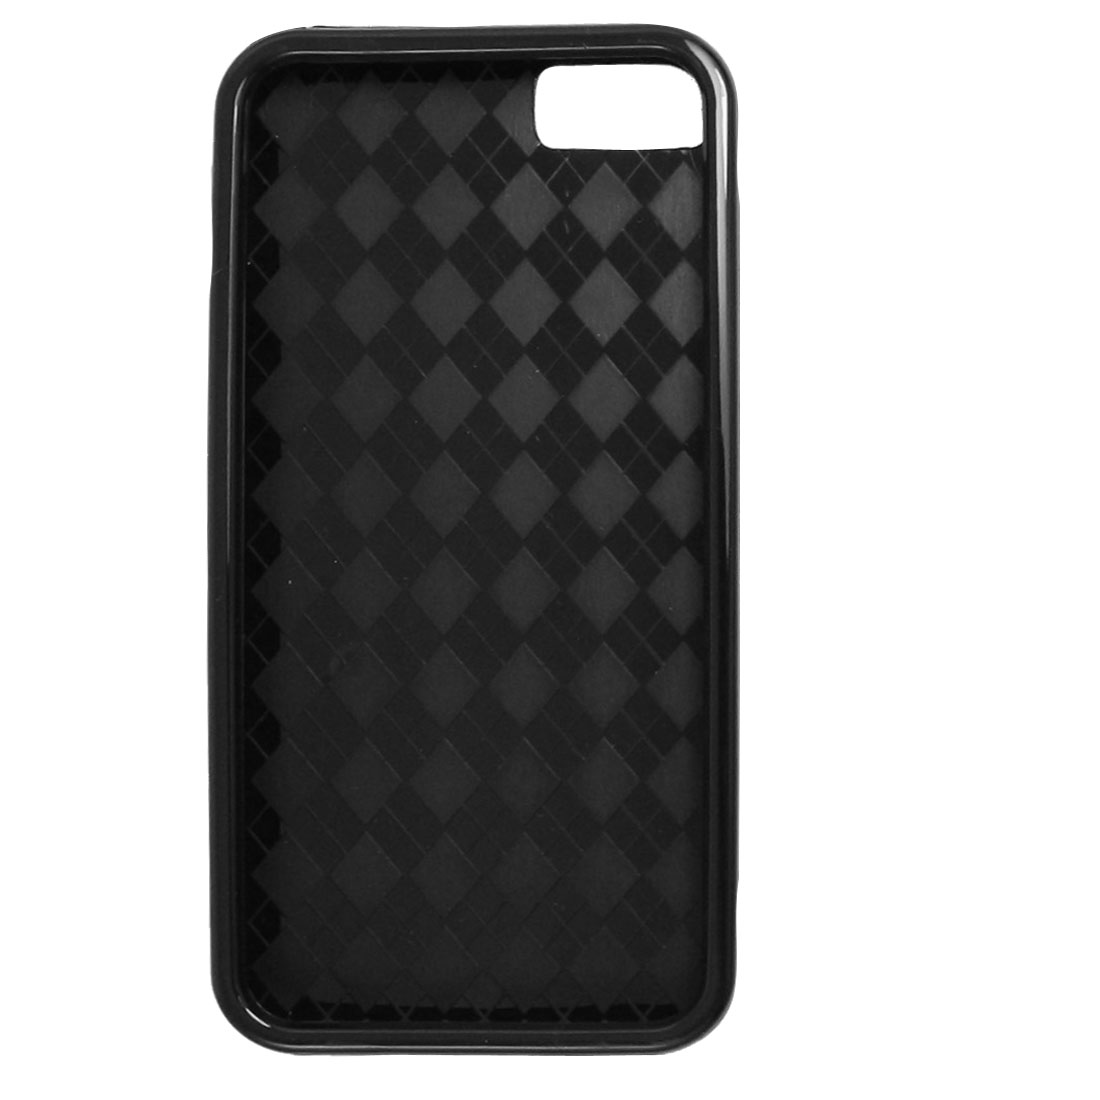 Soft Plastic Rhombus Pattern Shield Cover Case Black for iPhone 5 5G